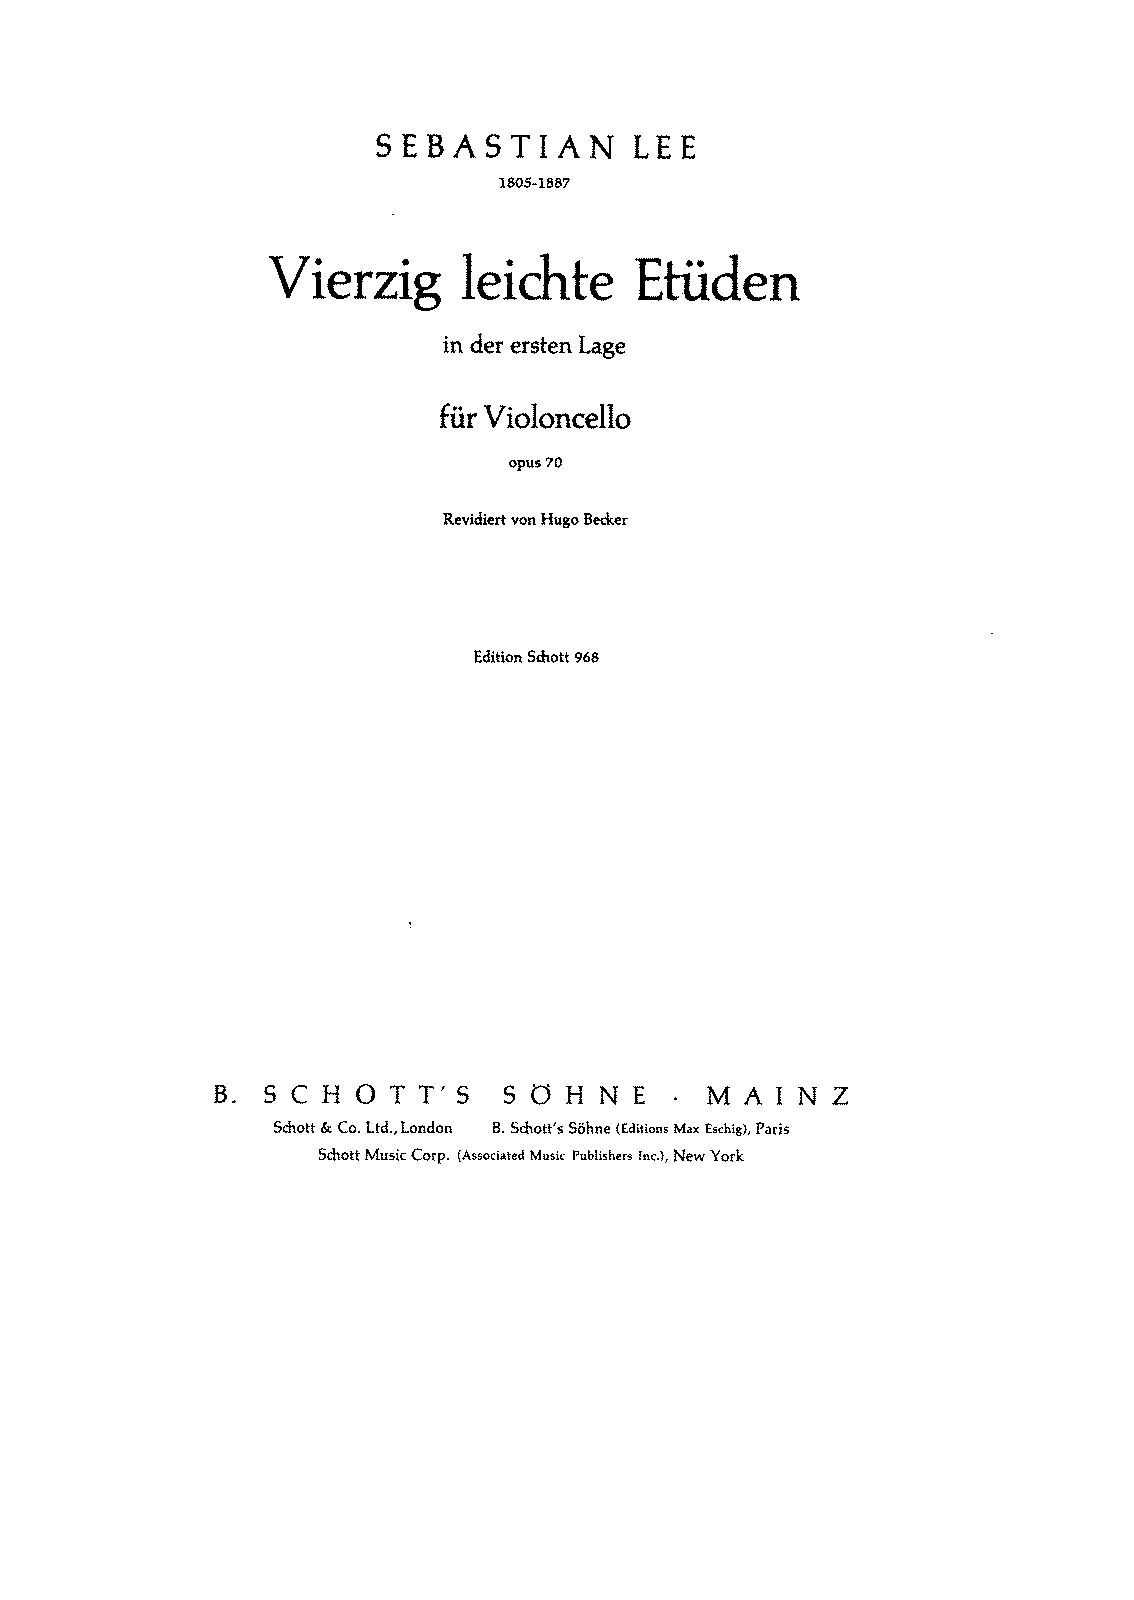 PMLP384191-Lee - 40 leichte Etuden (Easy Etudes) for Cello Op70 (Becker).pdf